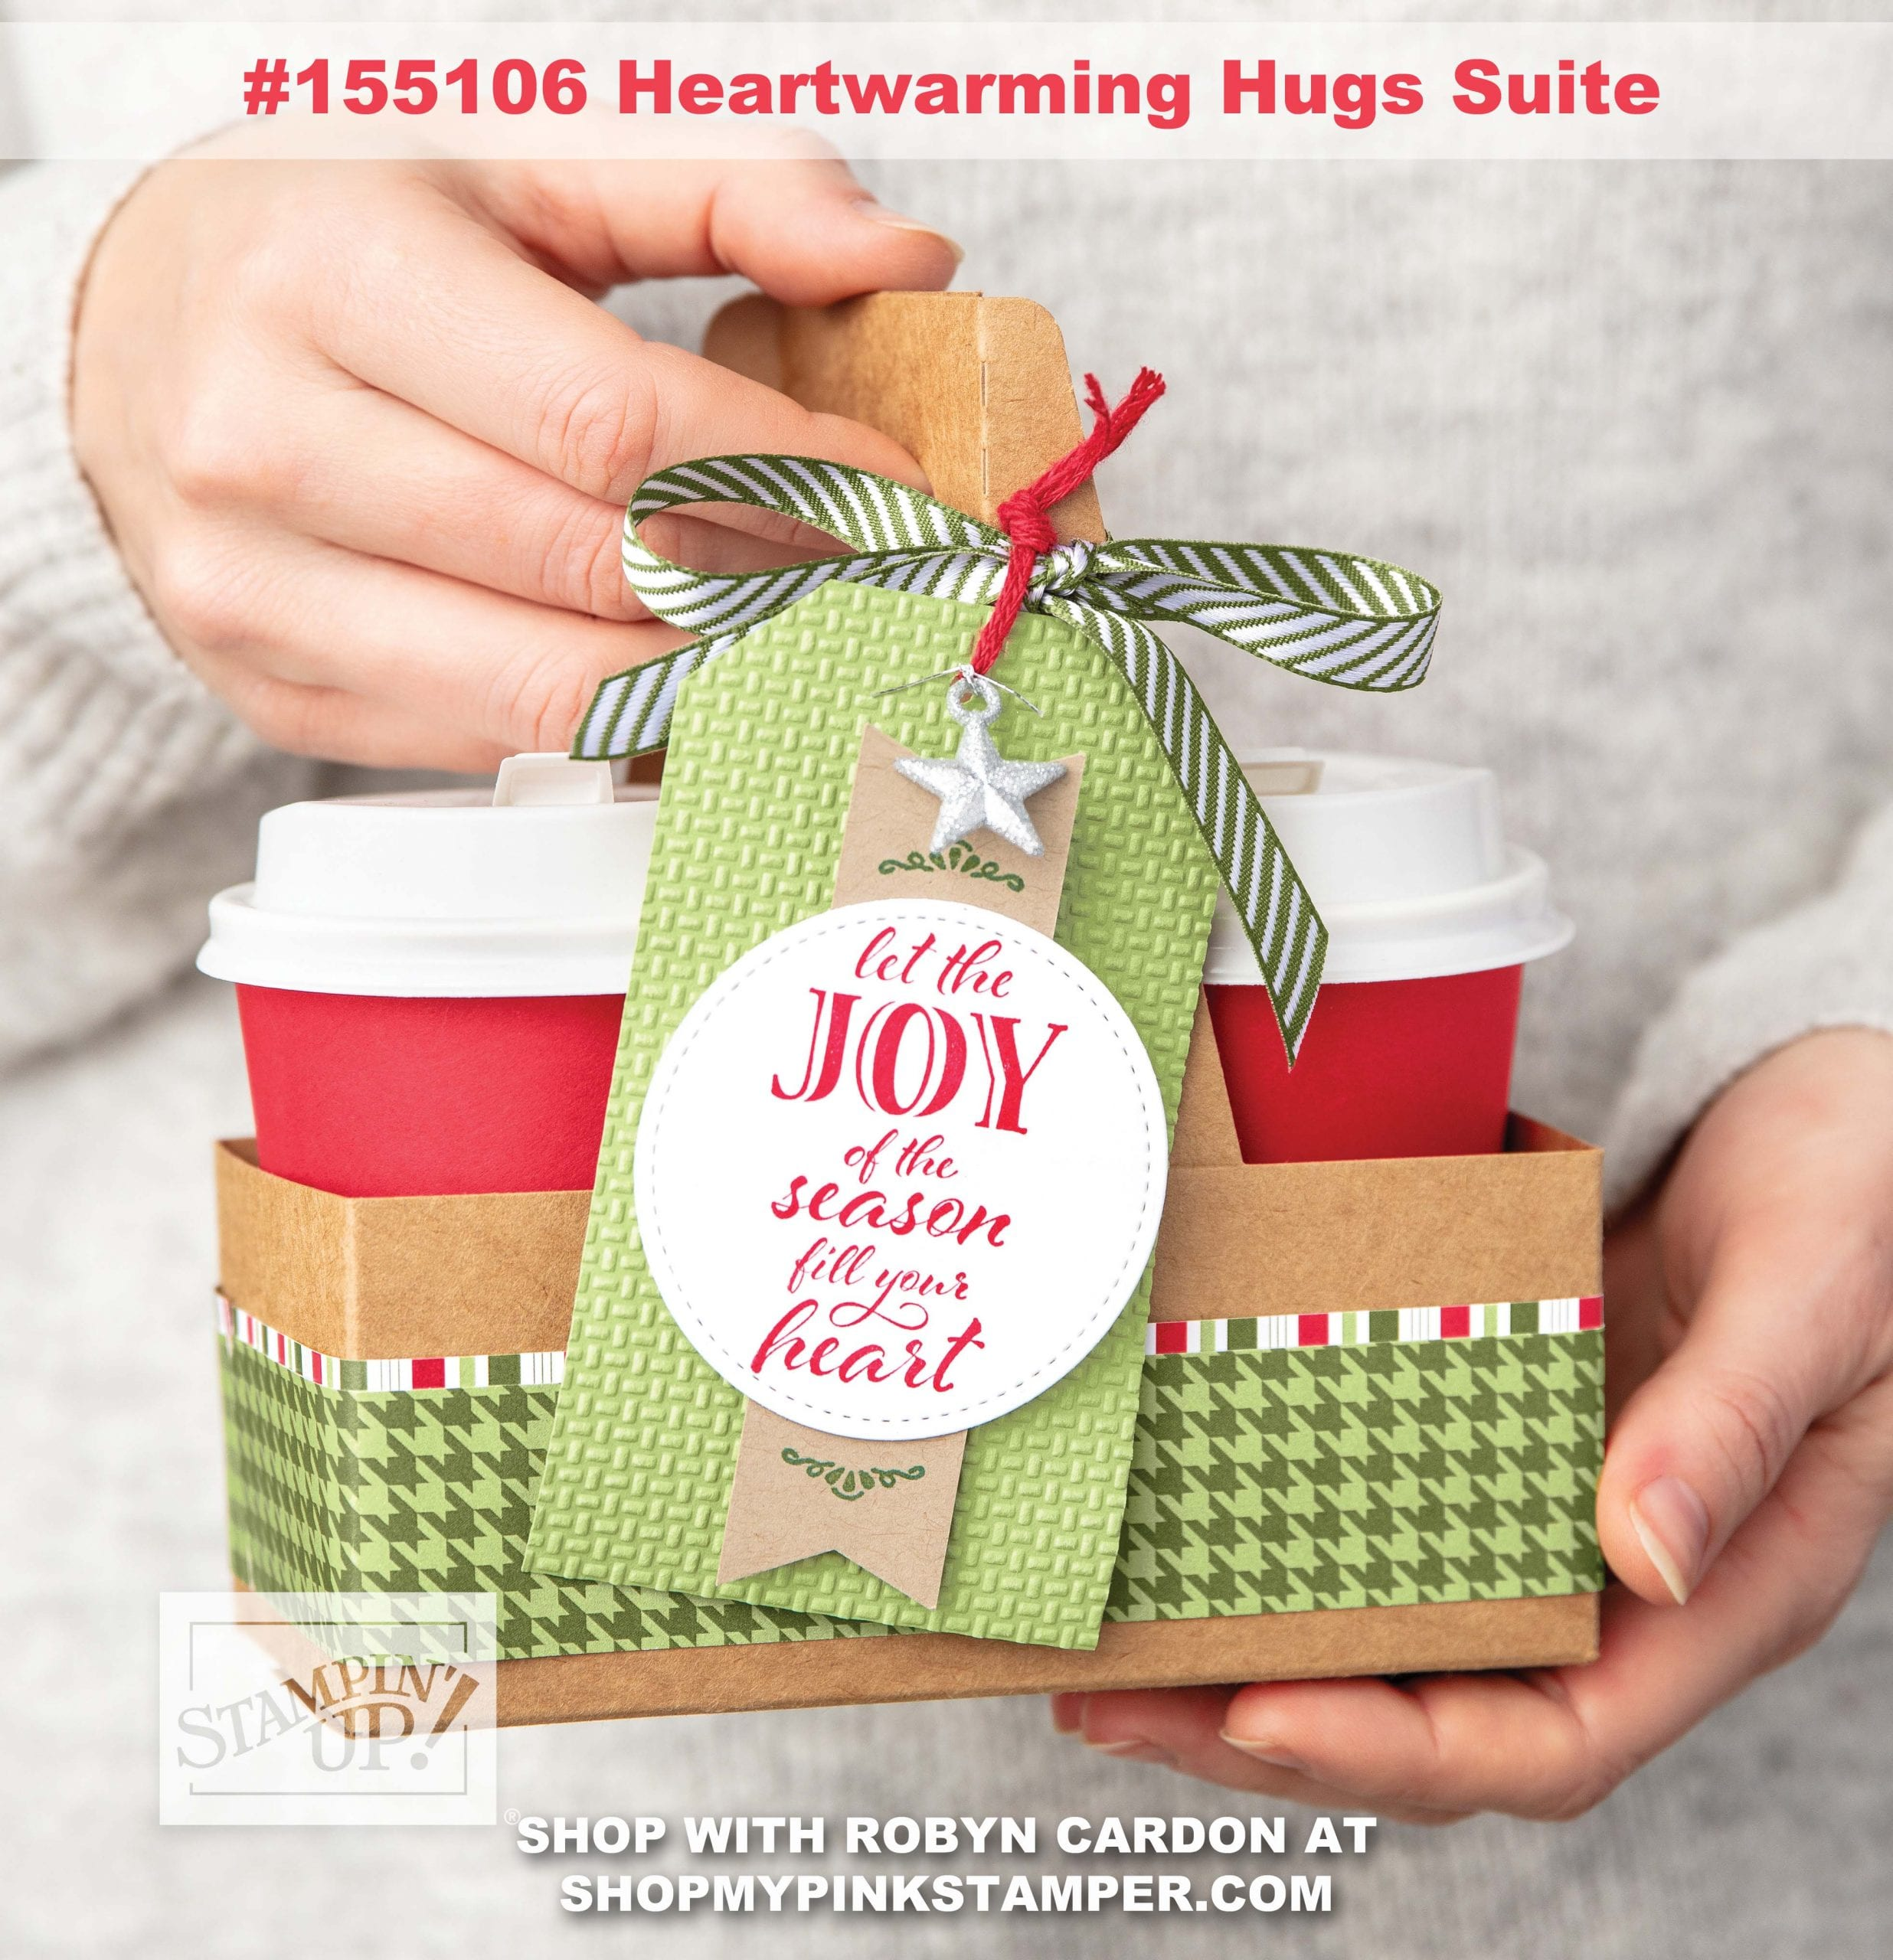 New Stampin' Up! Holiday Catalog is LIVE & Heartwarming Hugs Suite Spotlight